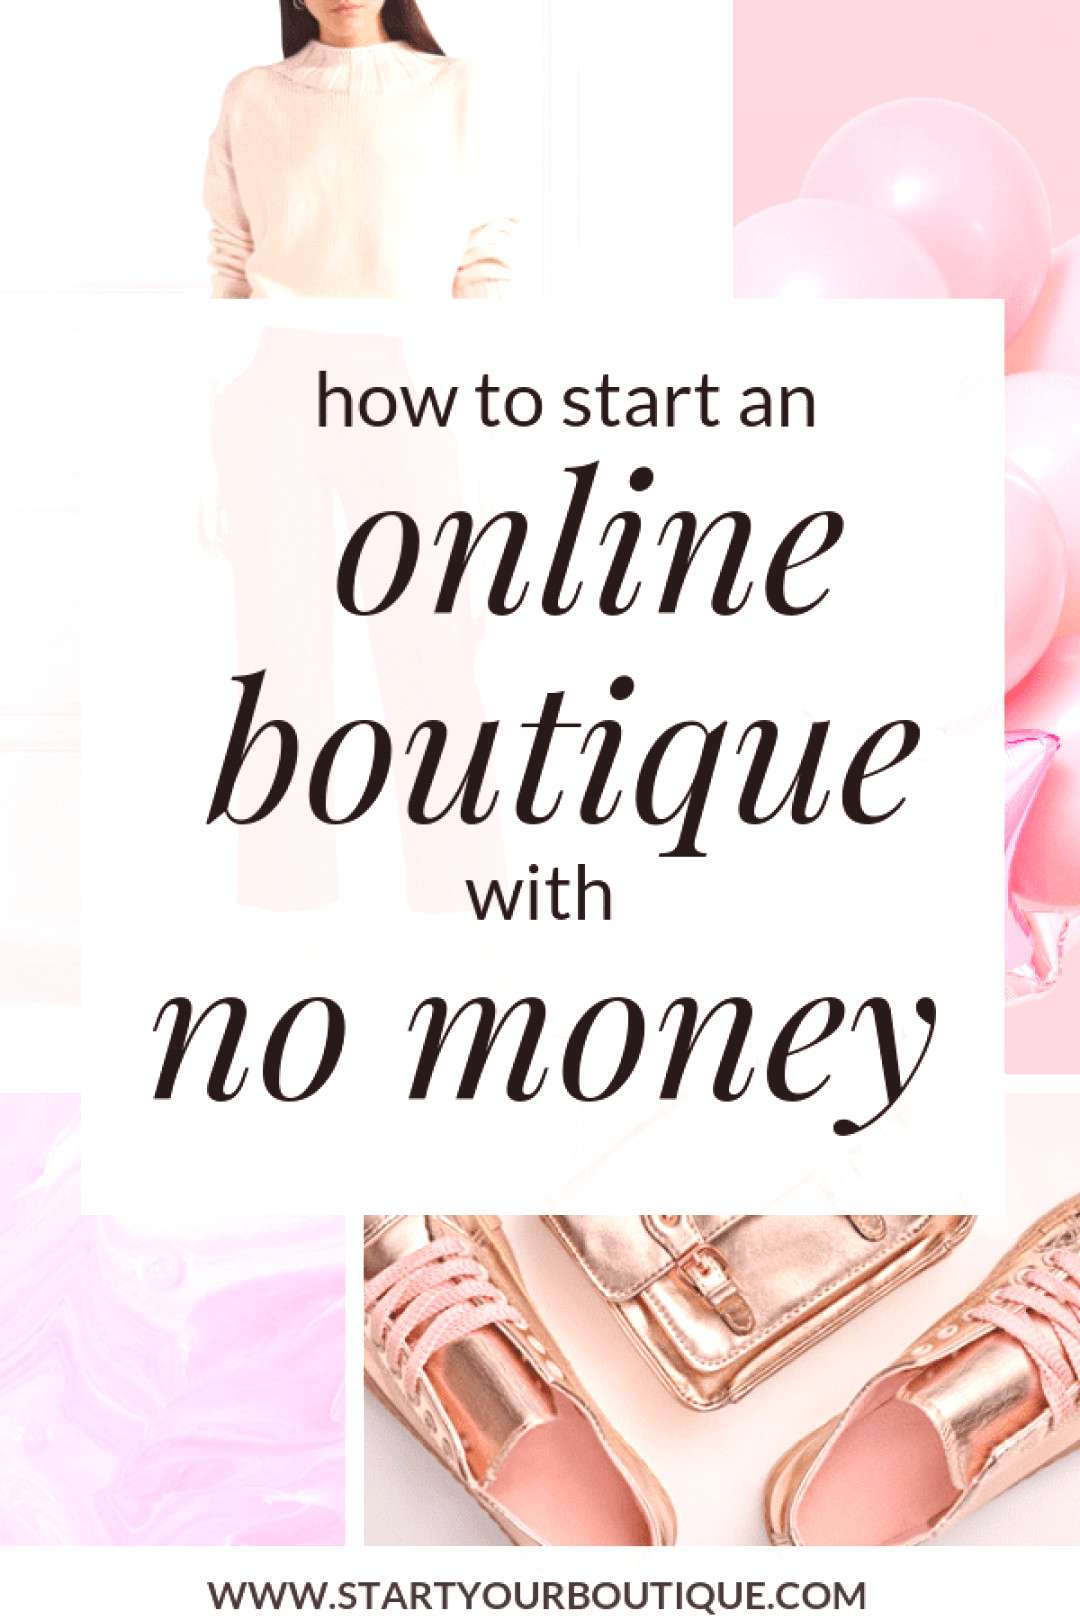 If you want to start an online boutique but have no money click through to read more about what you